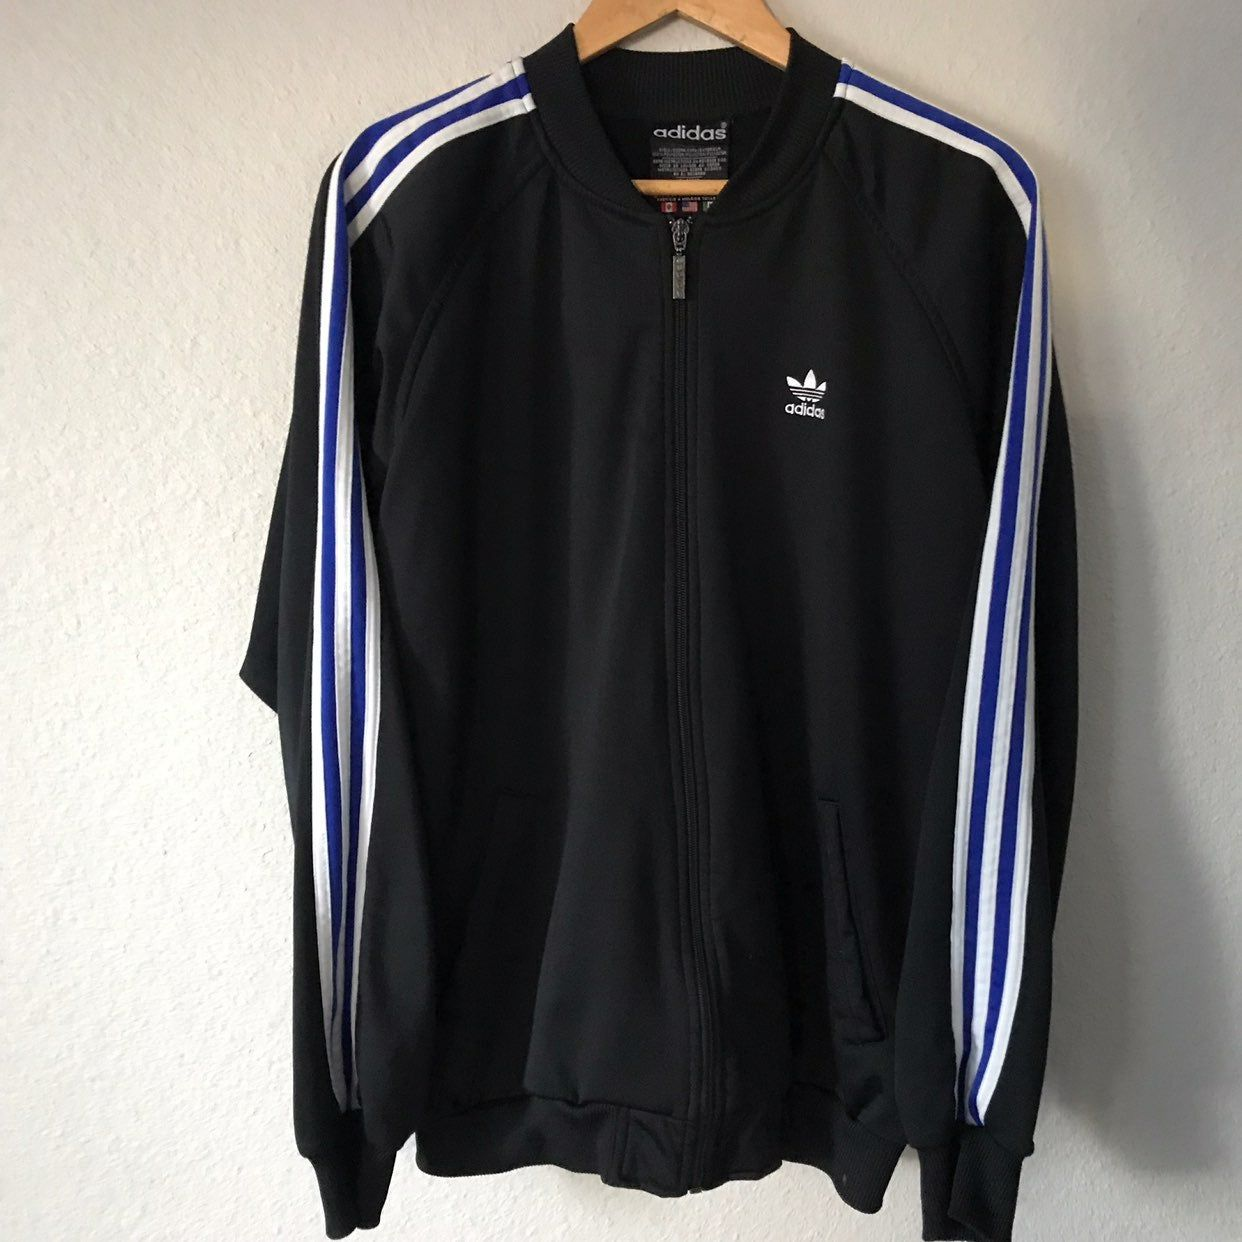 Pin By Allison On Adidas Apparel In 2020 Adidas Jacket